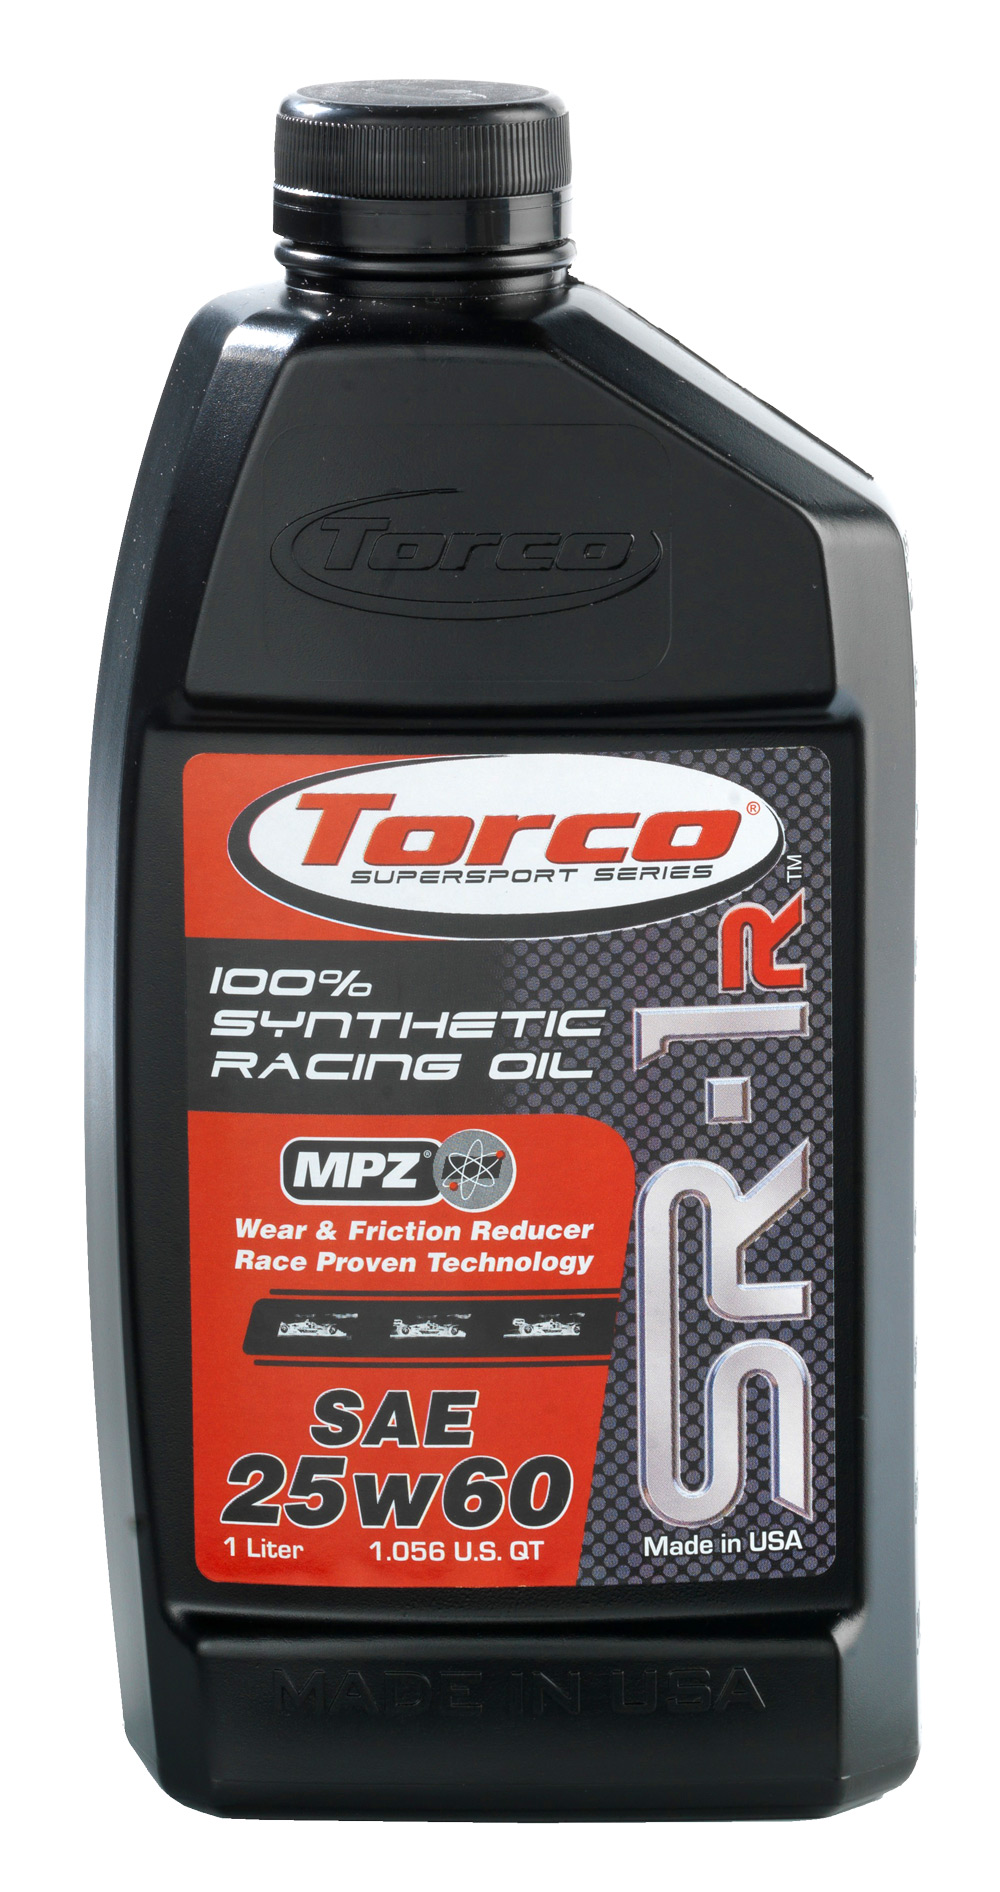 2014 Nissan Quest For Sale >> Torco SR-1R Synthetic Motor Oil (100% Synthetic) - Nissan